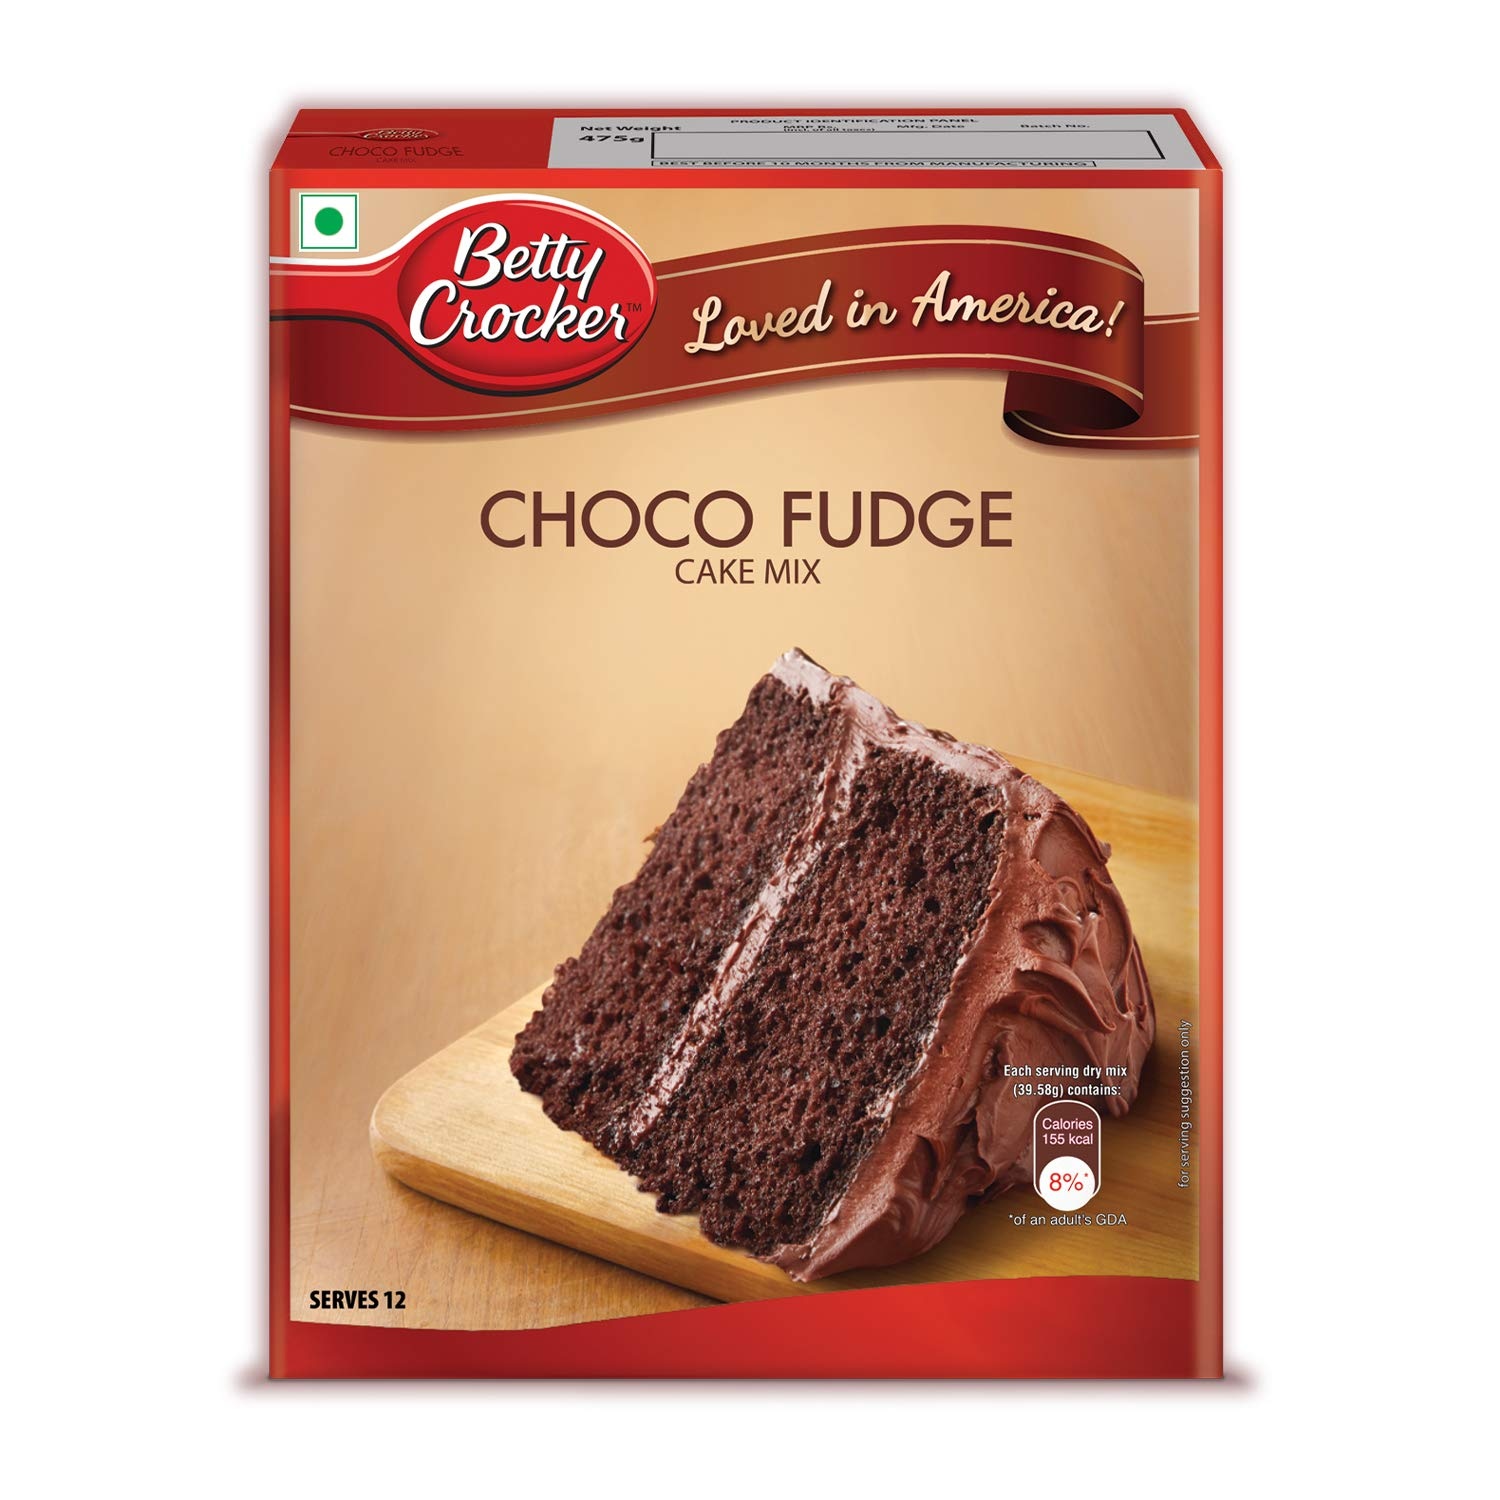 Betty Crocker Choco Fudge Cake Mix Instant Cake Mix Powder 3 Step Cake Mix Whisk Pour Bake Moist Chocolate Fudge Cake 475g Amazon In Grocery Gourmet Foods